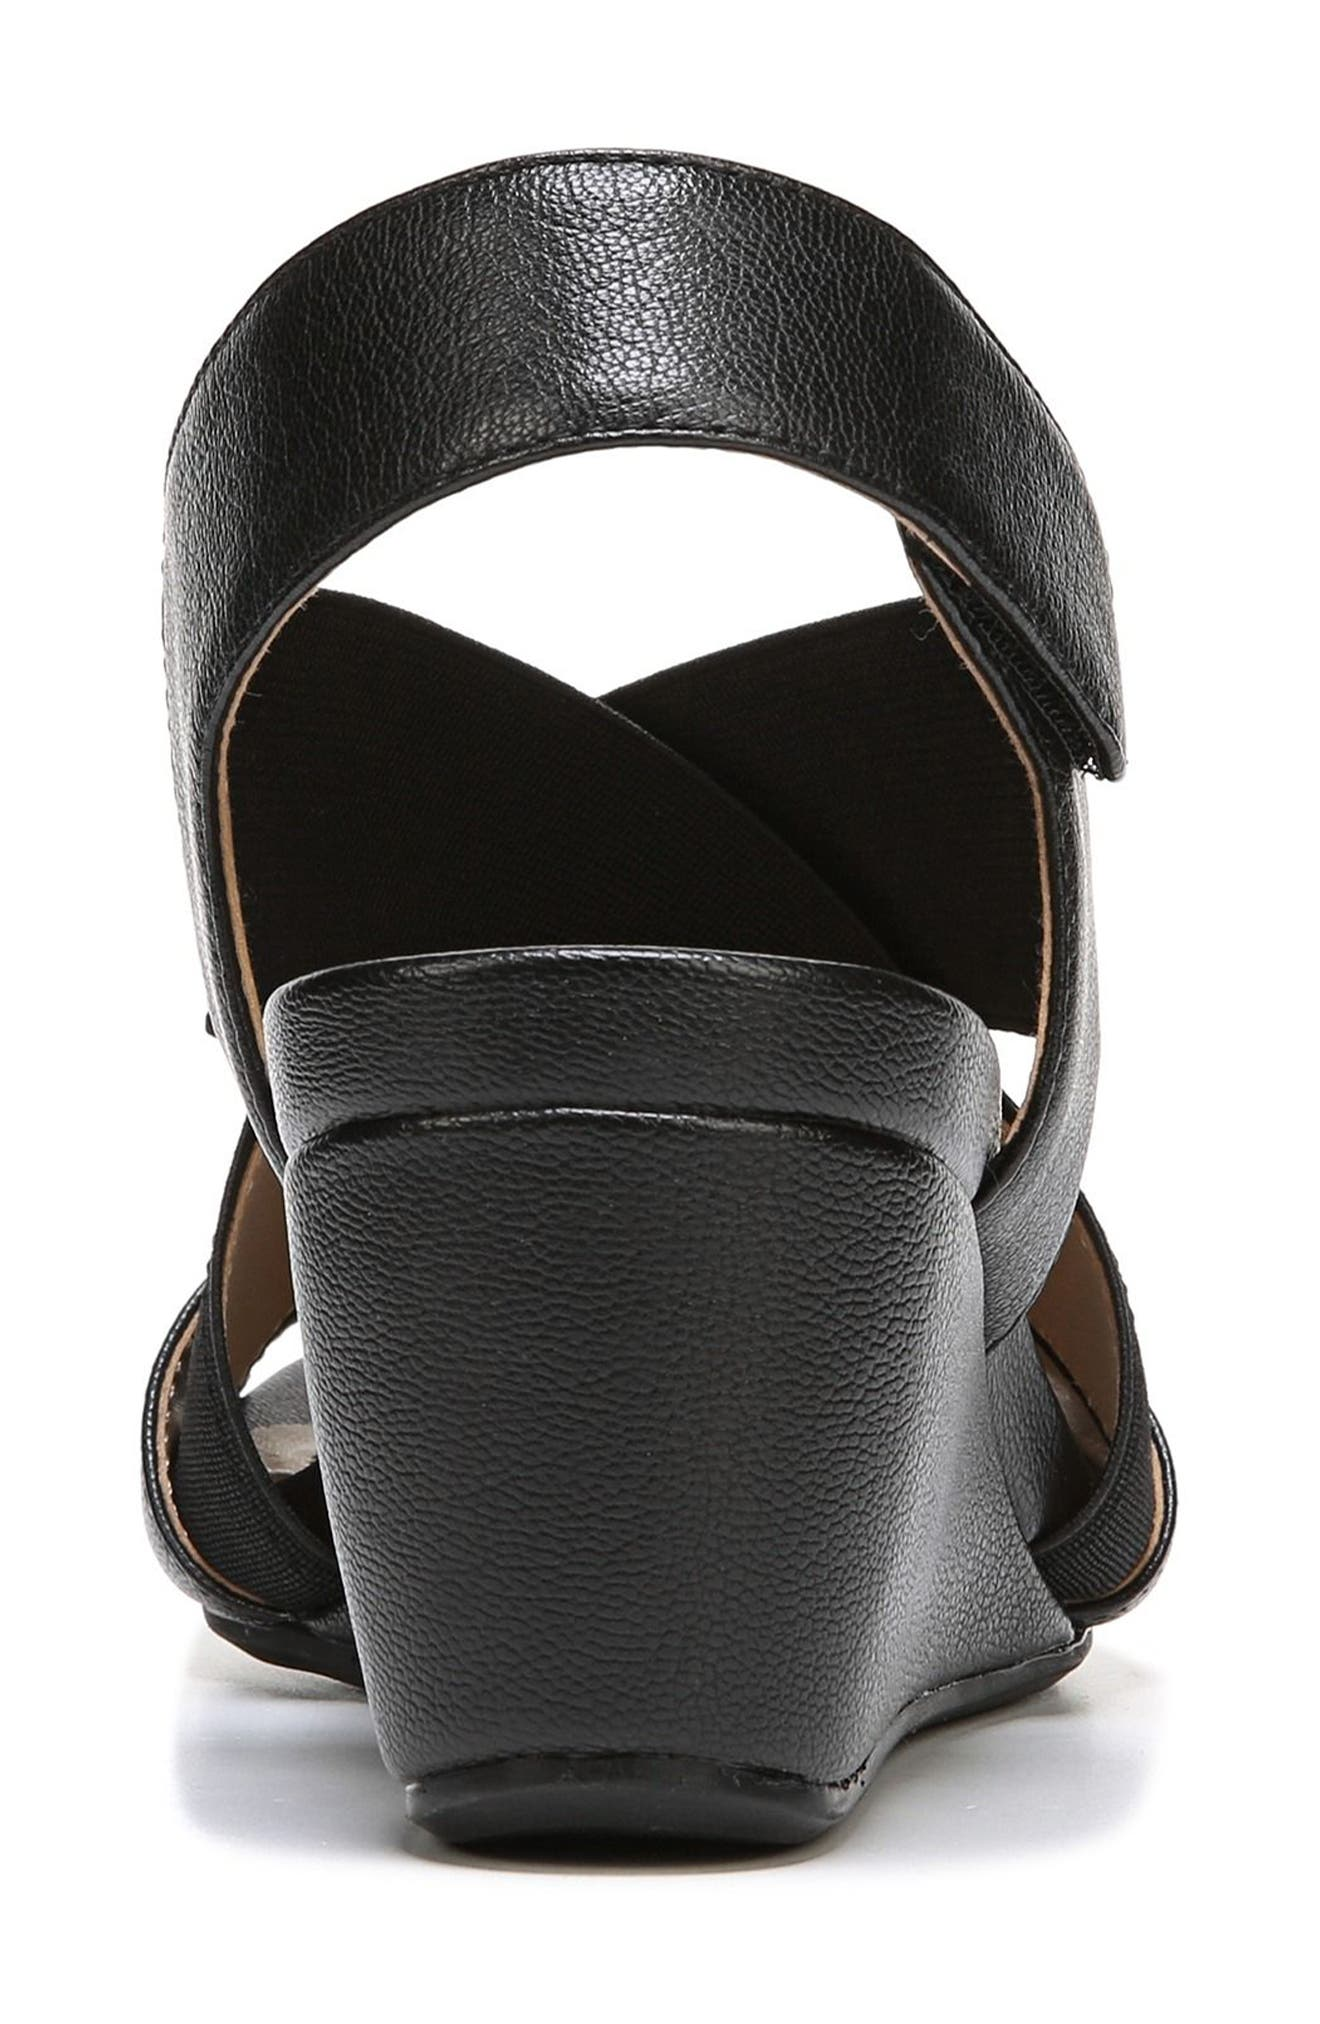 Cleo Wedge Sandal,                             Alternate thumbnail 7, color,                             BLACK LEATHER